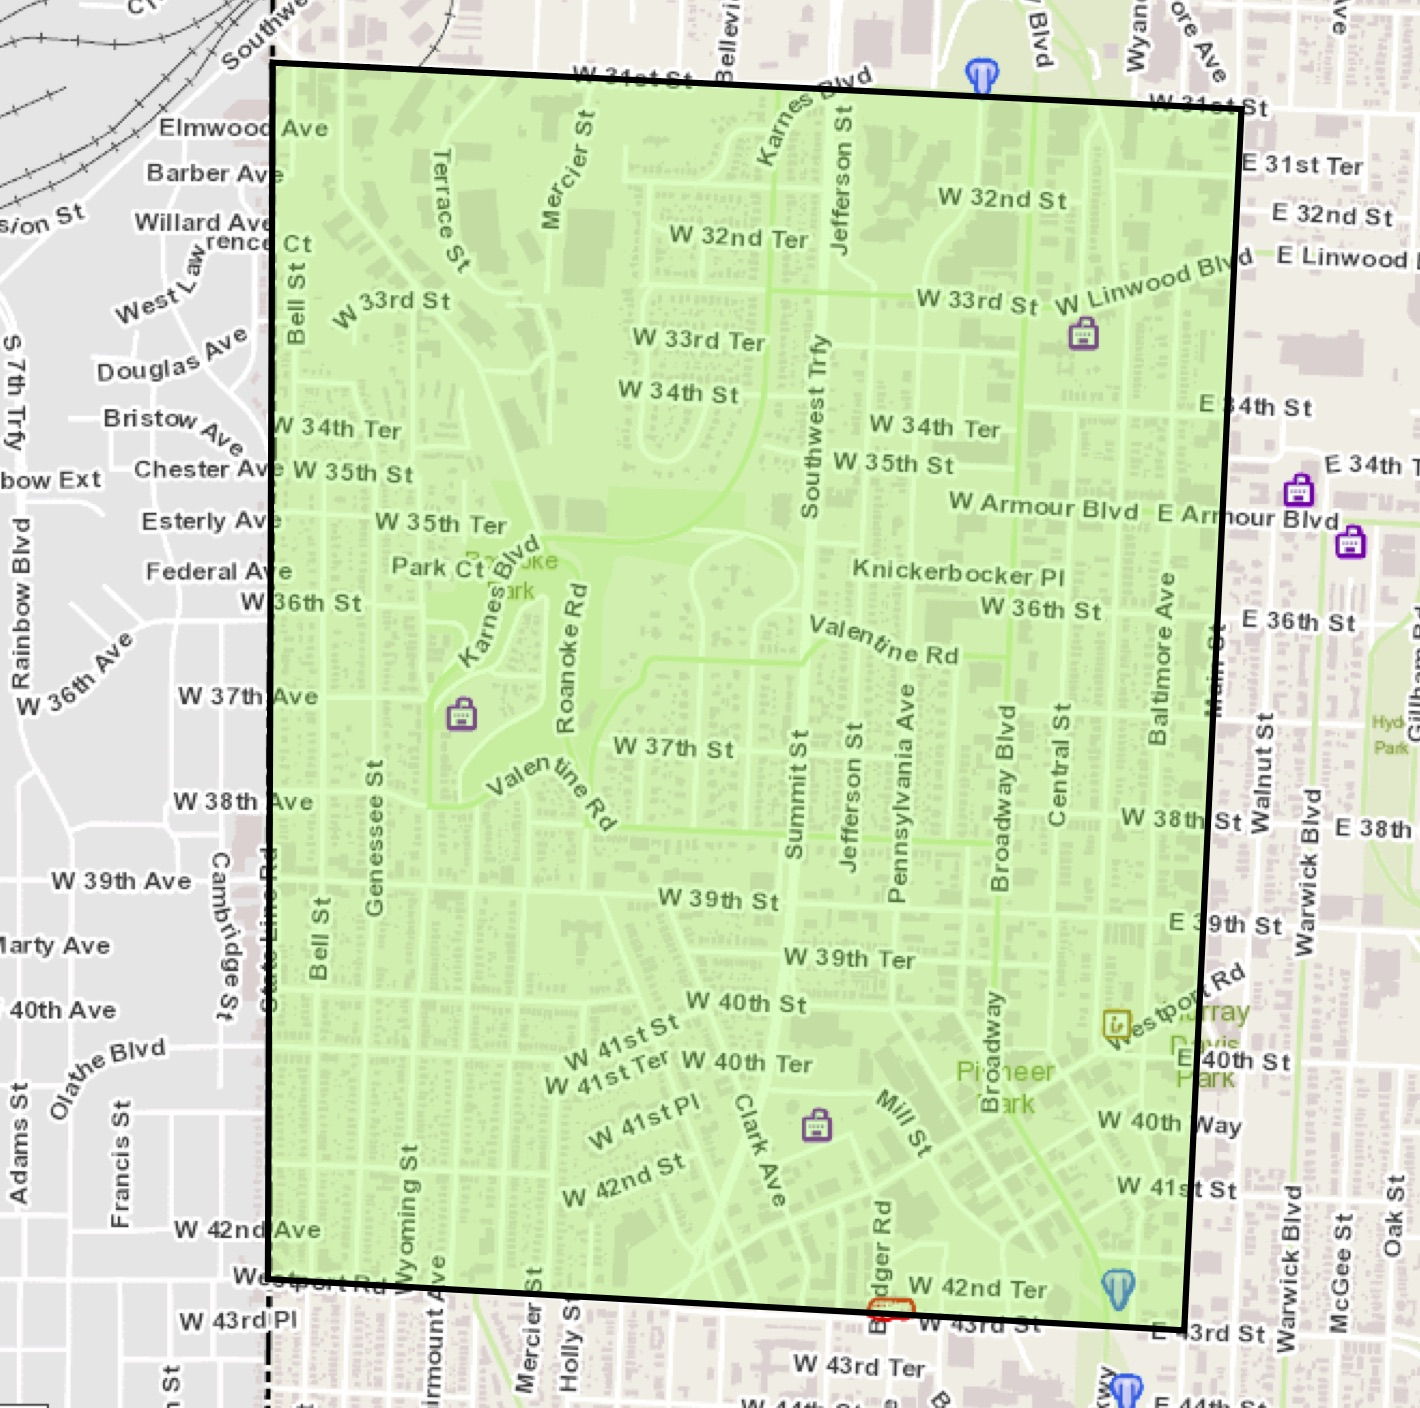 West Midtown in KC, MO - roughly bounded by 31st Street, State Line Road, Westport Road/43rd Street and Main Street. About 1.65 square miles.